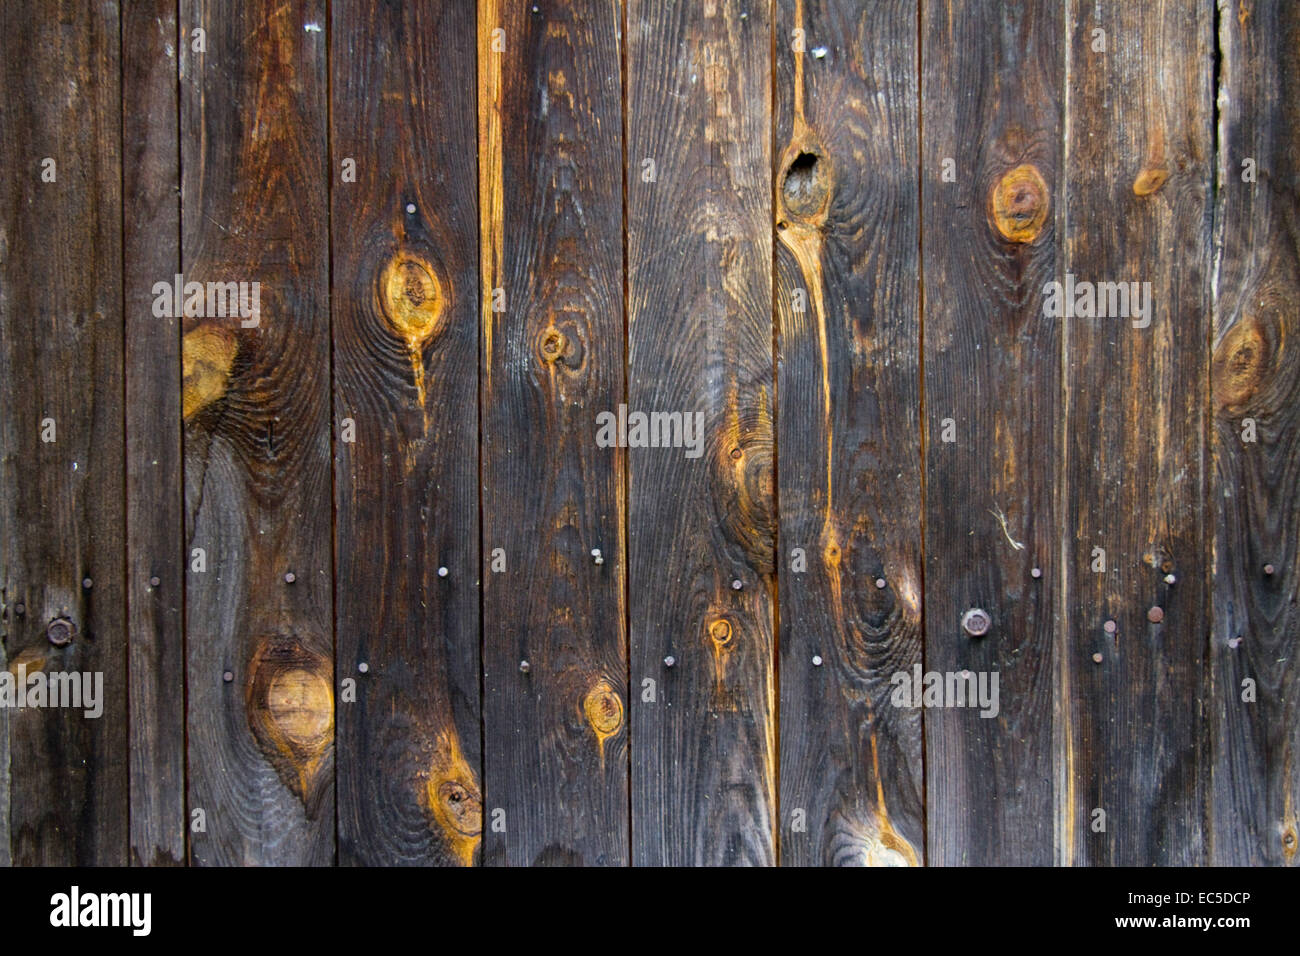 wooden boards with knotholes Stock Photo